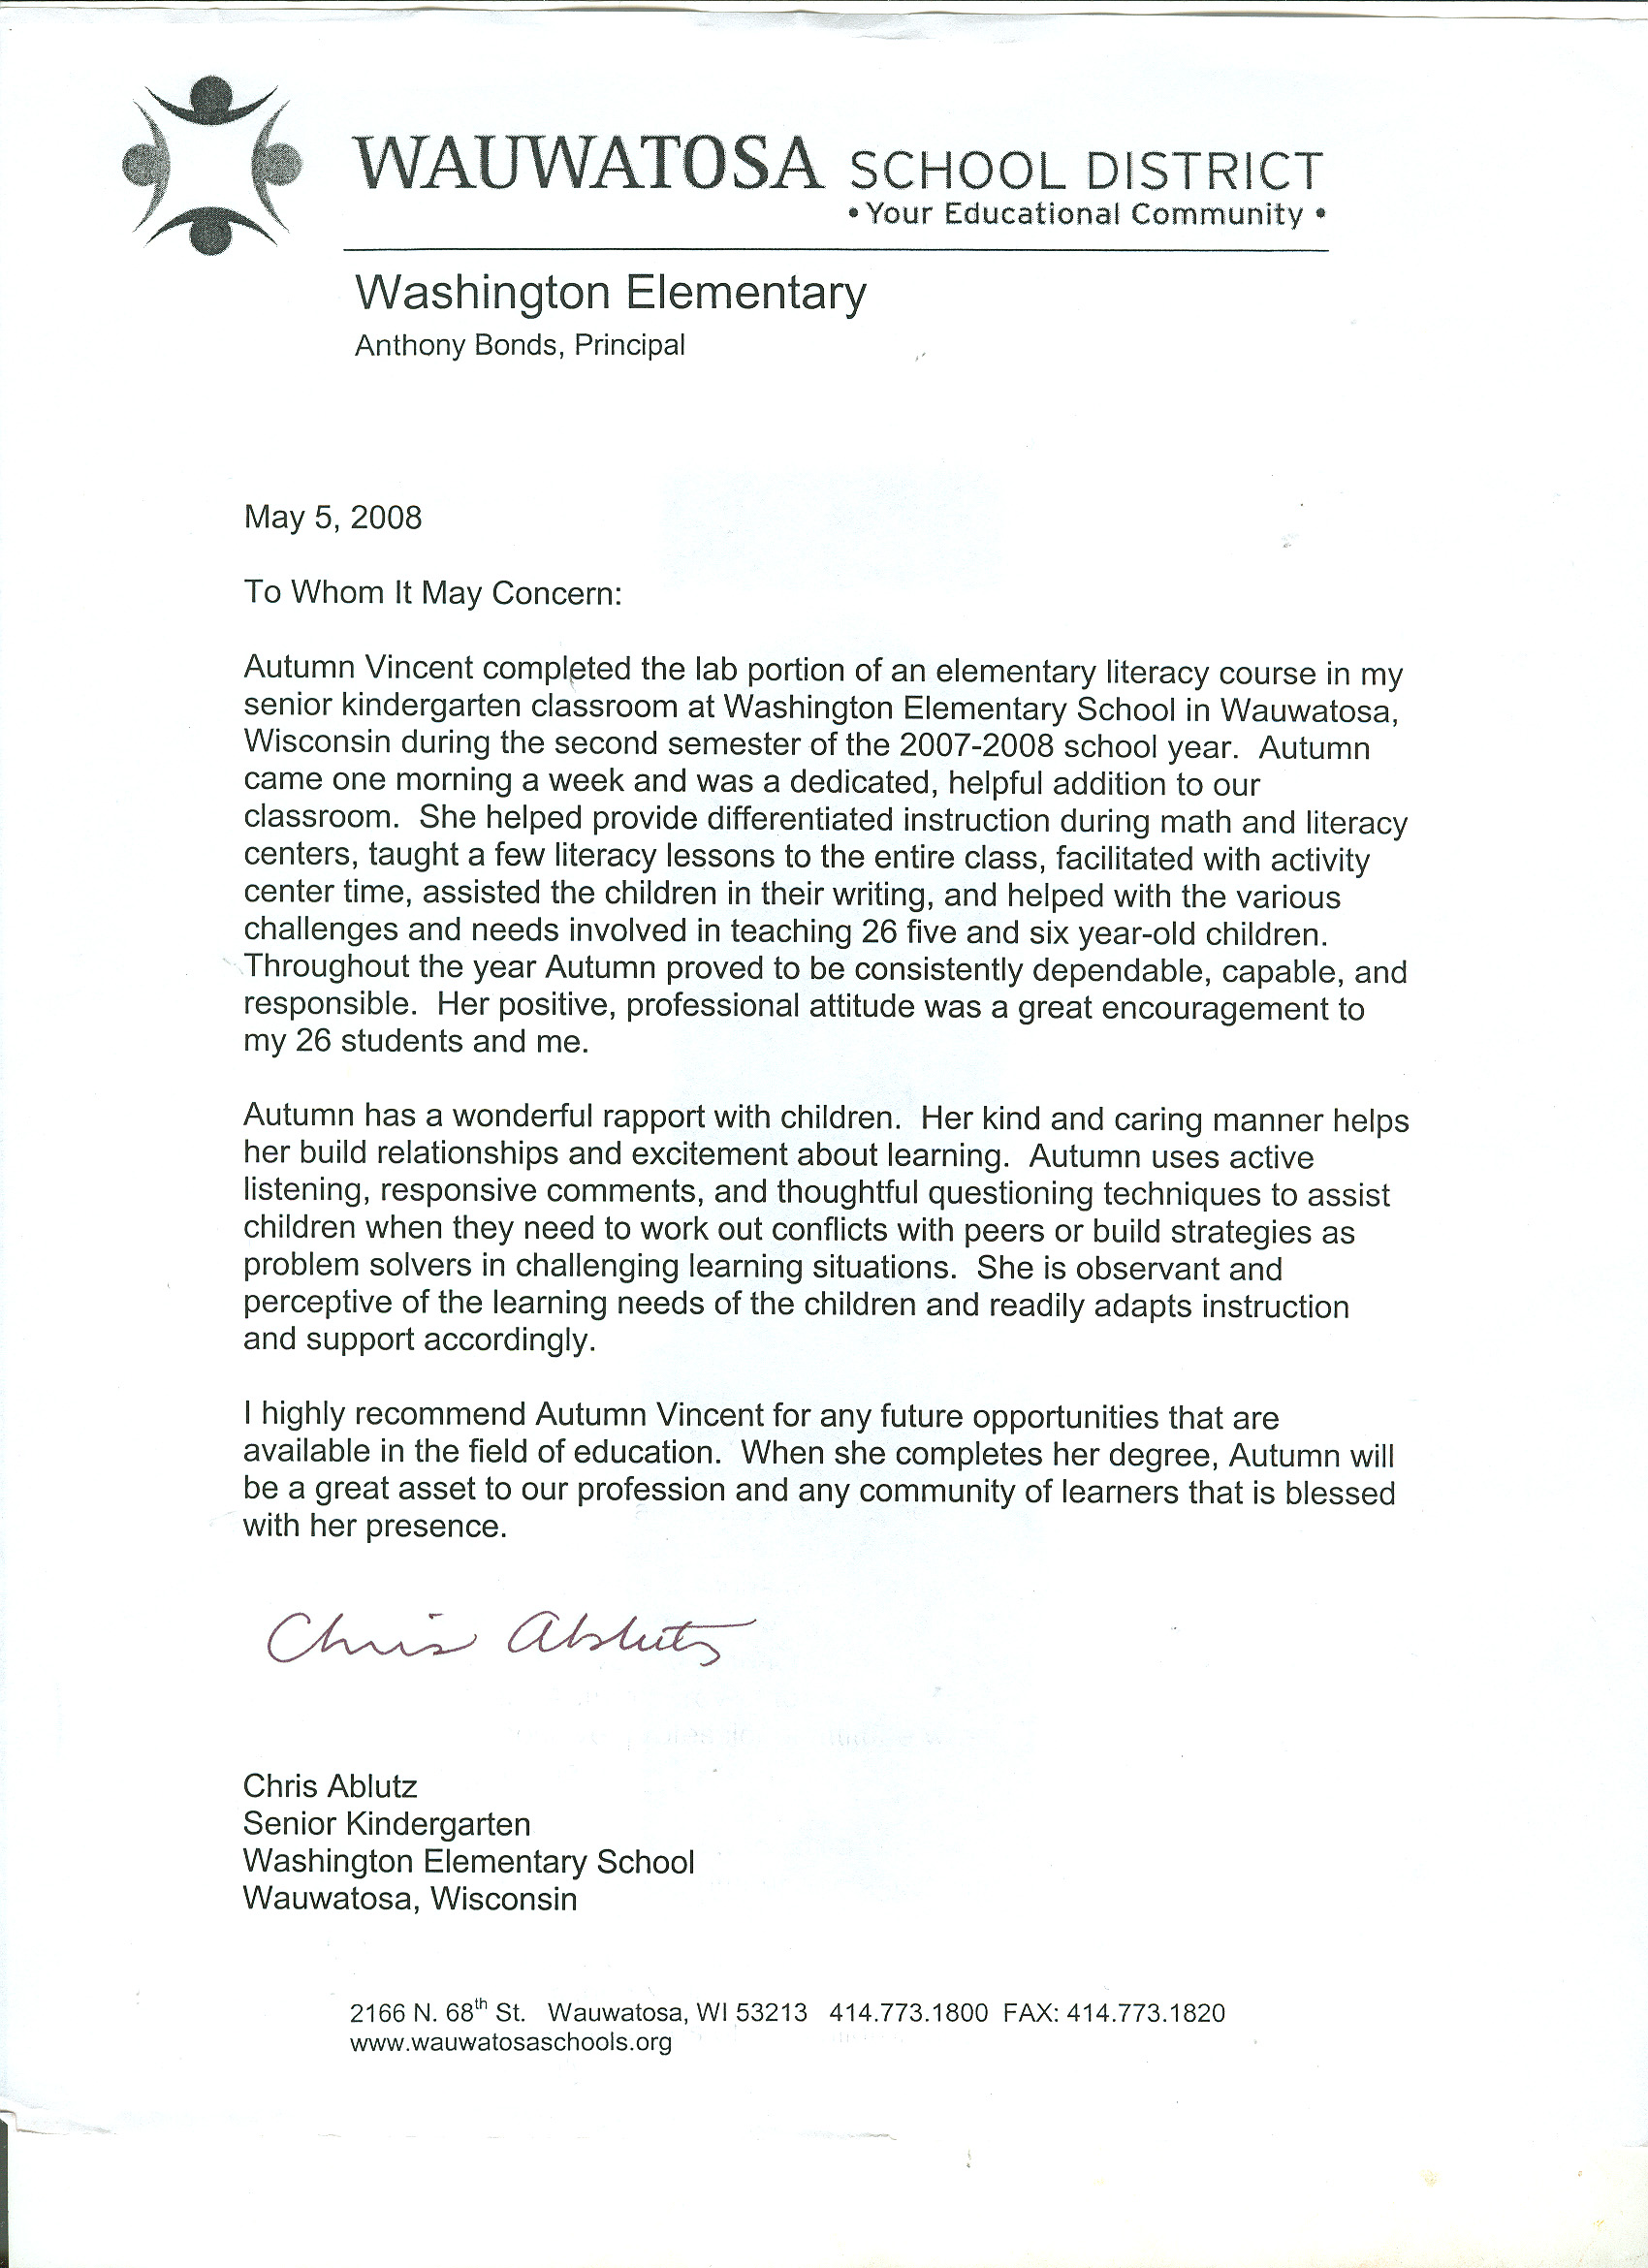 Free Letters Of Recommendation For Teachers Cover Letter Templates